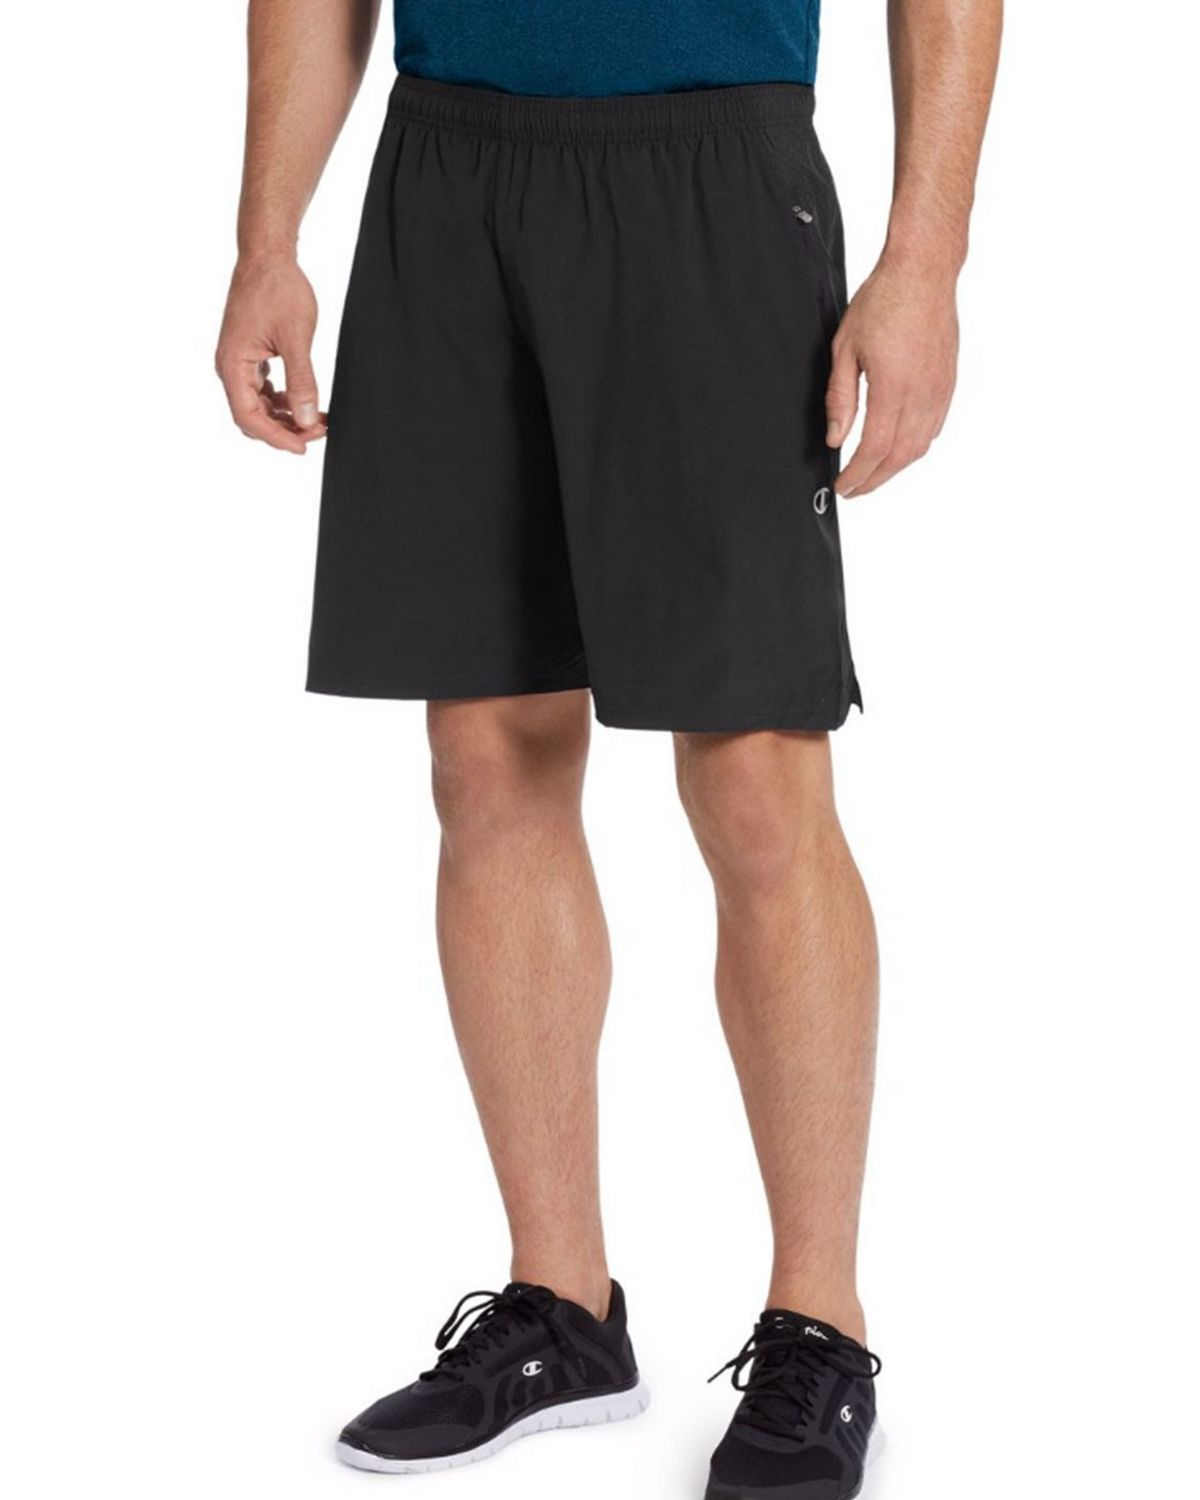 Champion 80046 365 Shorts - Black - L 80046